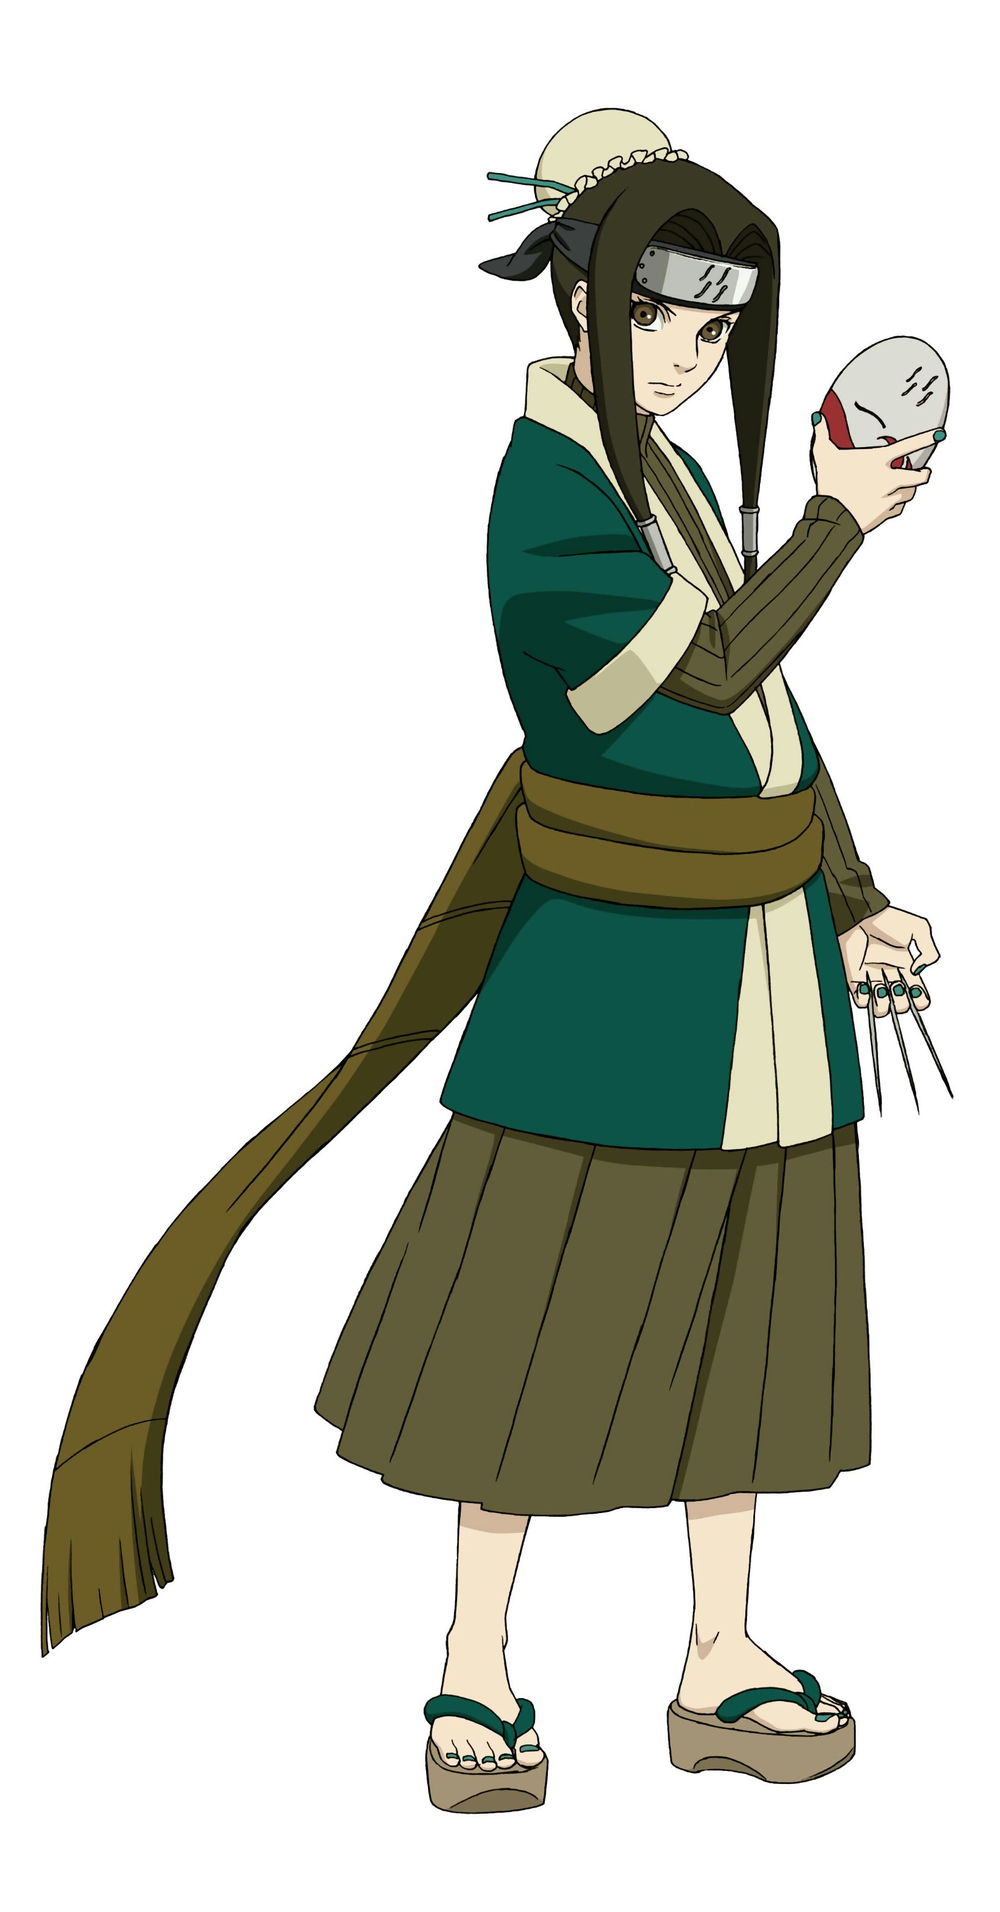 Haku (白, Haku) was an orphan from the Land of Water, and a ...